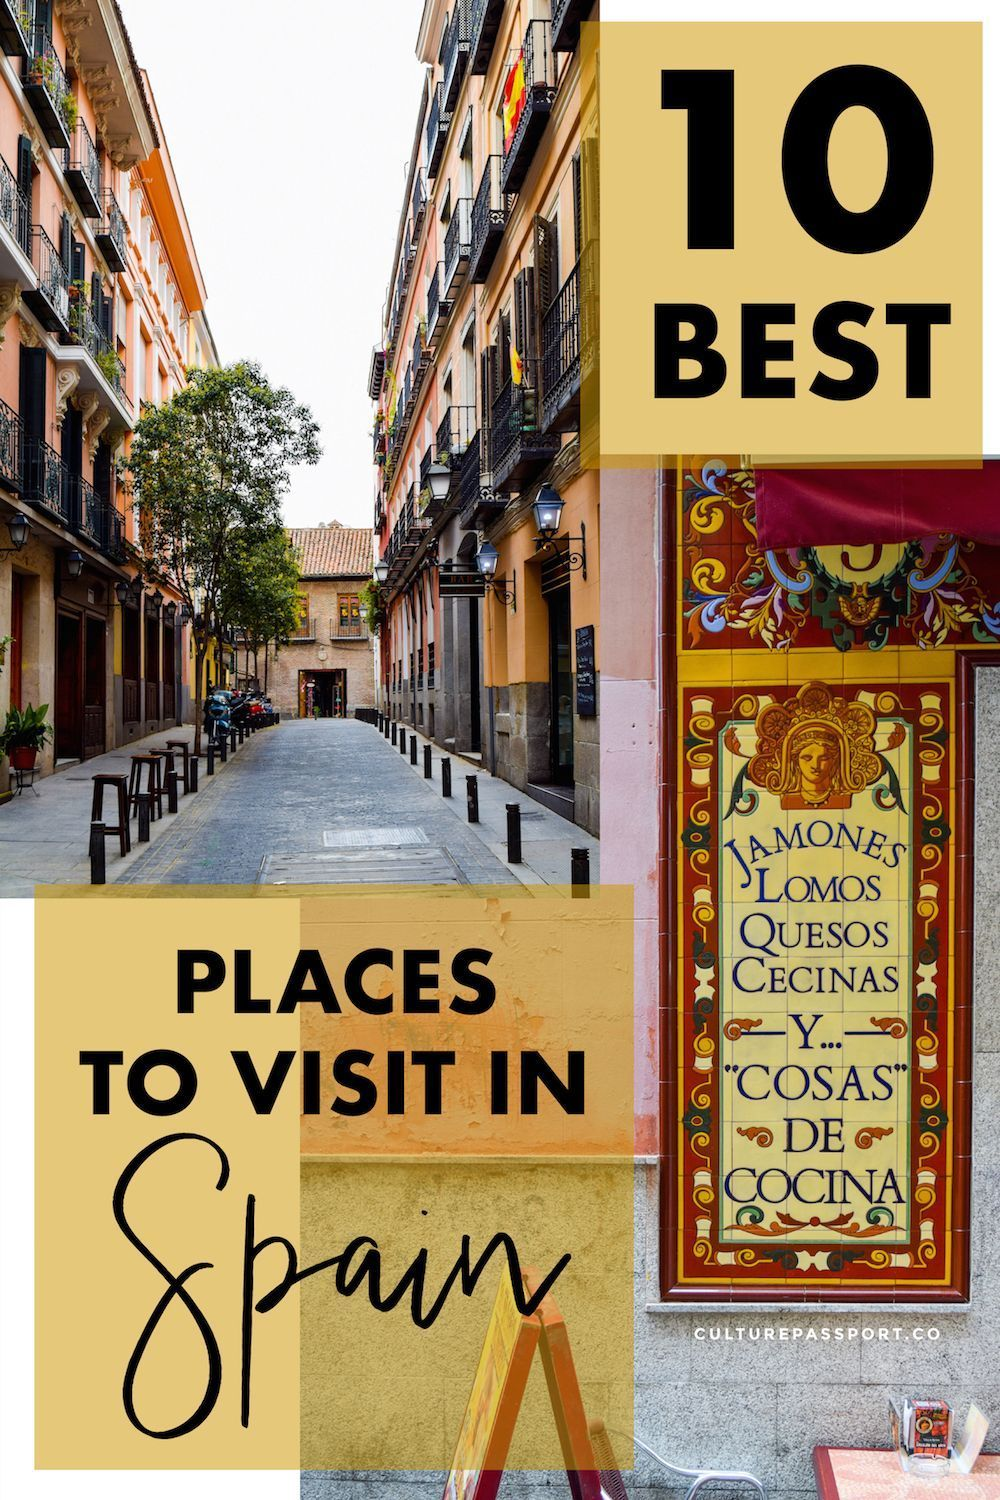 10 Best Places to Visit in Spain